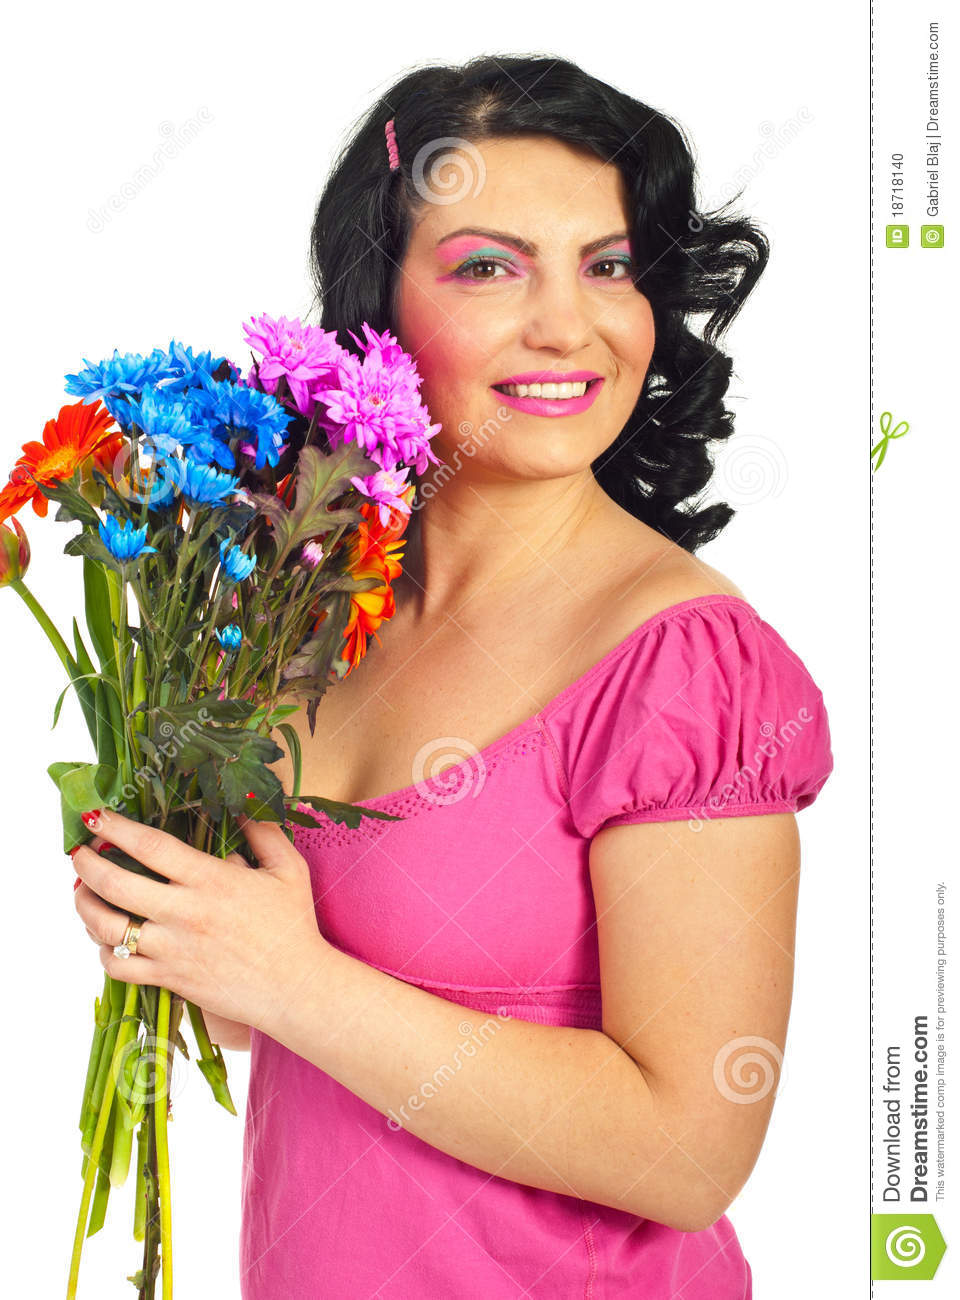 Beauty Woman Holding Flowers Bouquet Stock Photo - Image ...